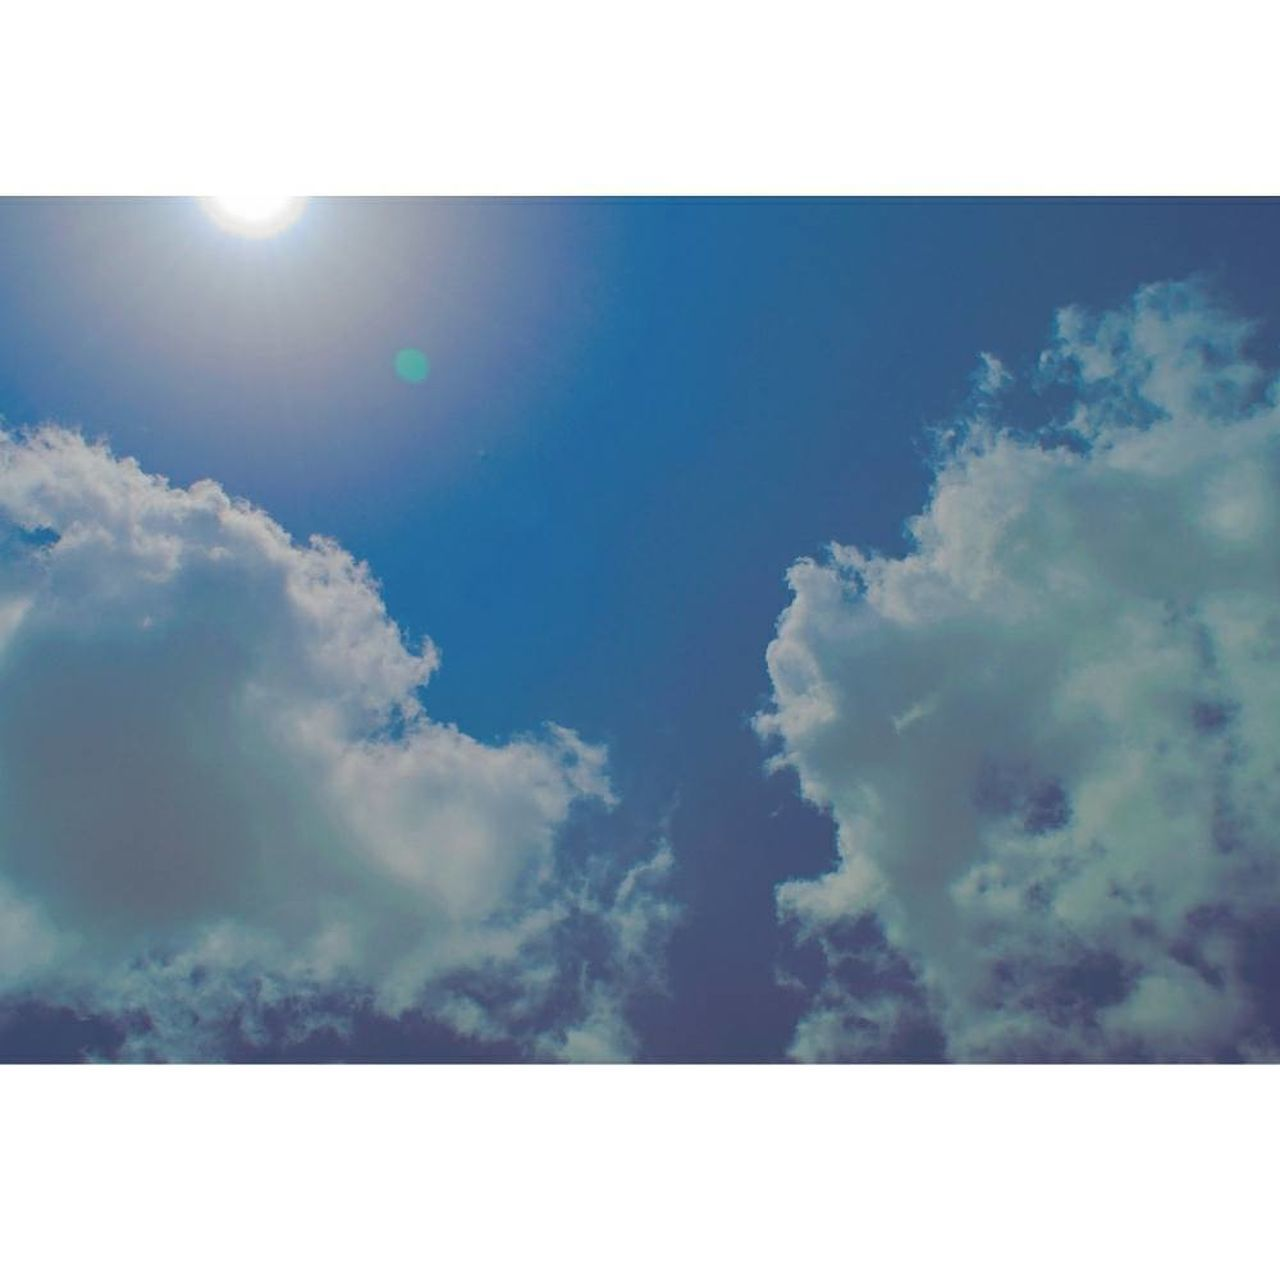 nature, cloud - sky, sky, sun, sunlight, outdoors, day, beauty in nature, backgrounds, no people, scenics, sky only, low angle view